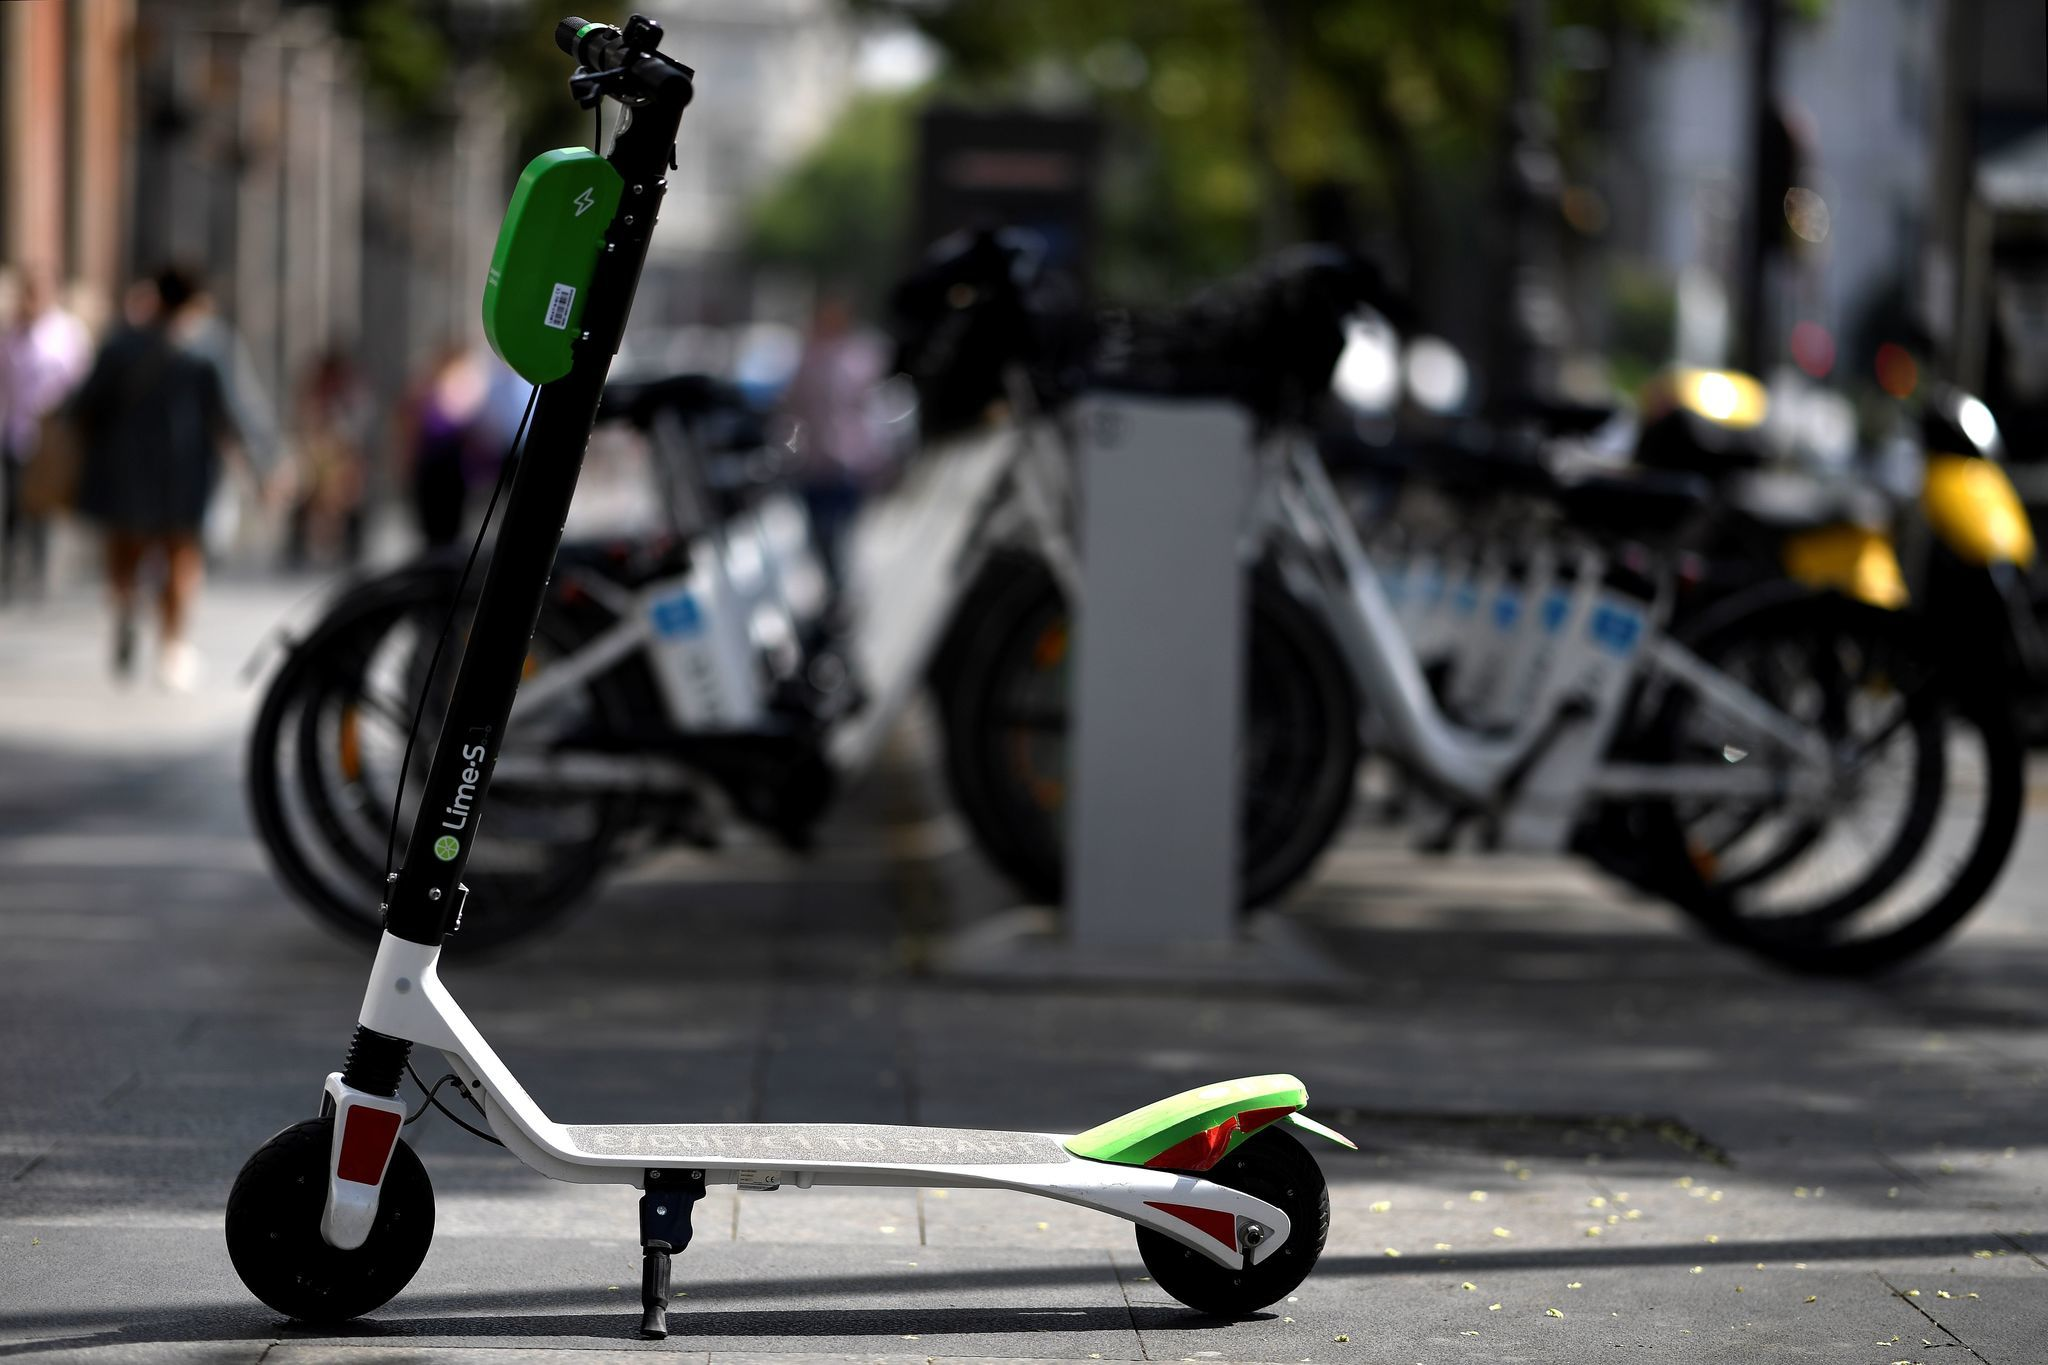 Electric Scooter Giant Lime Launches Global Recall Of One